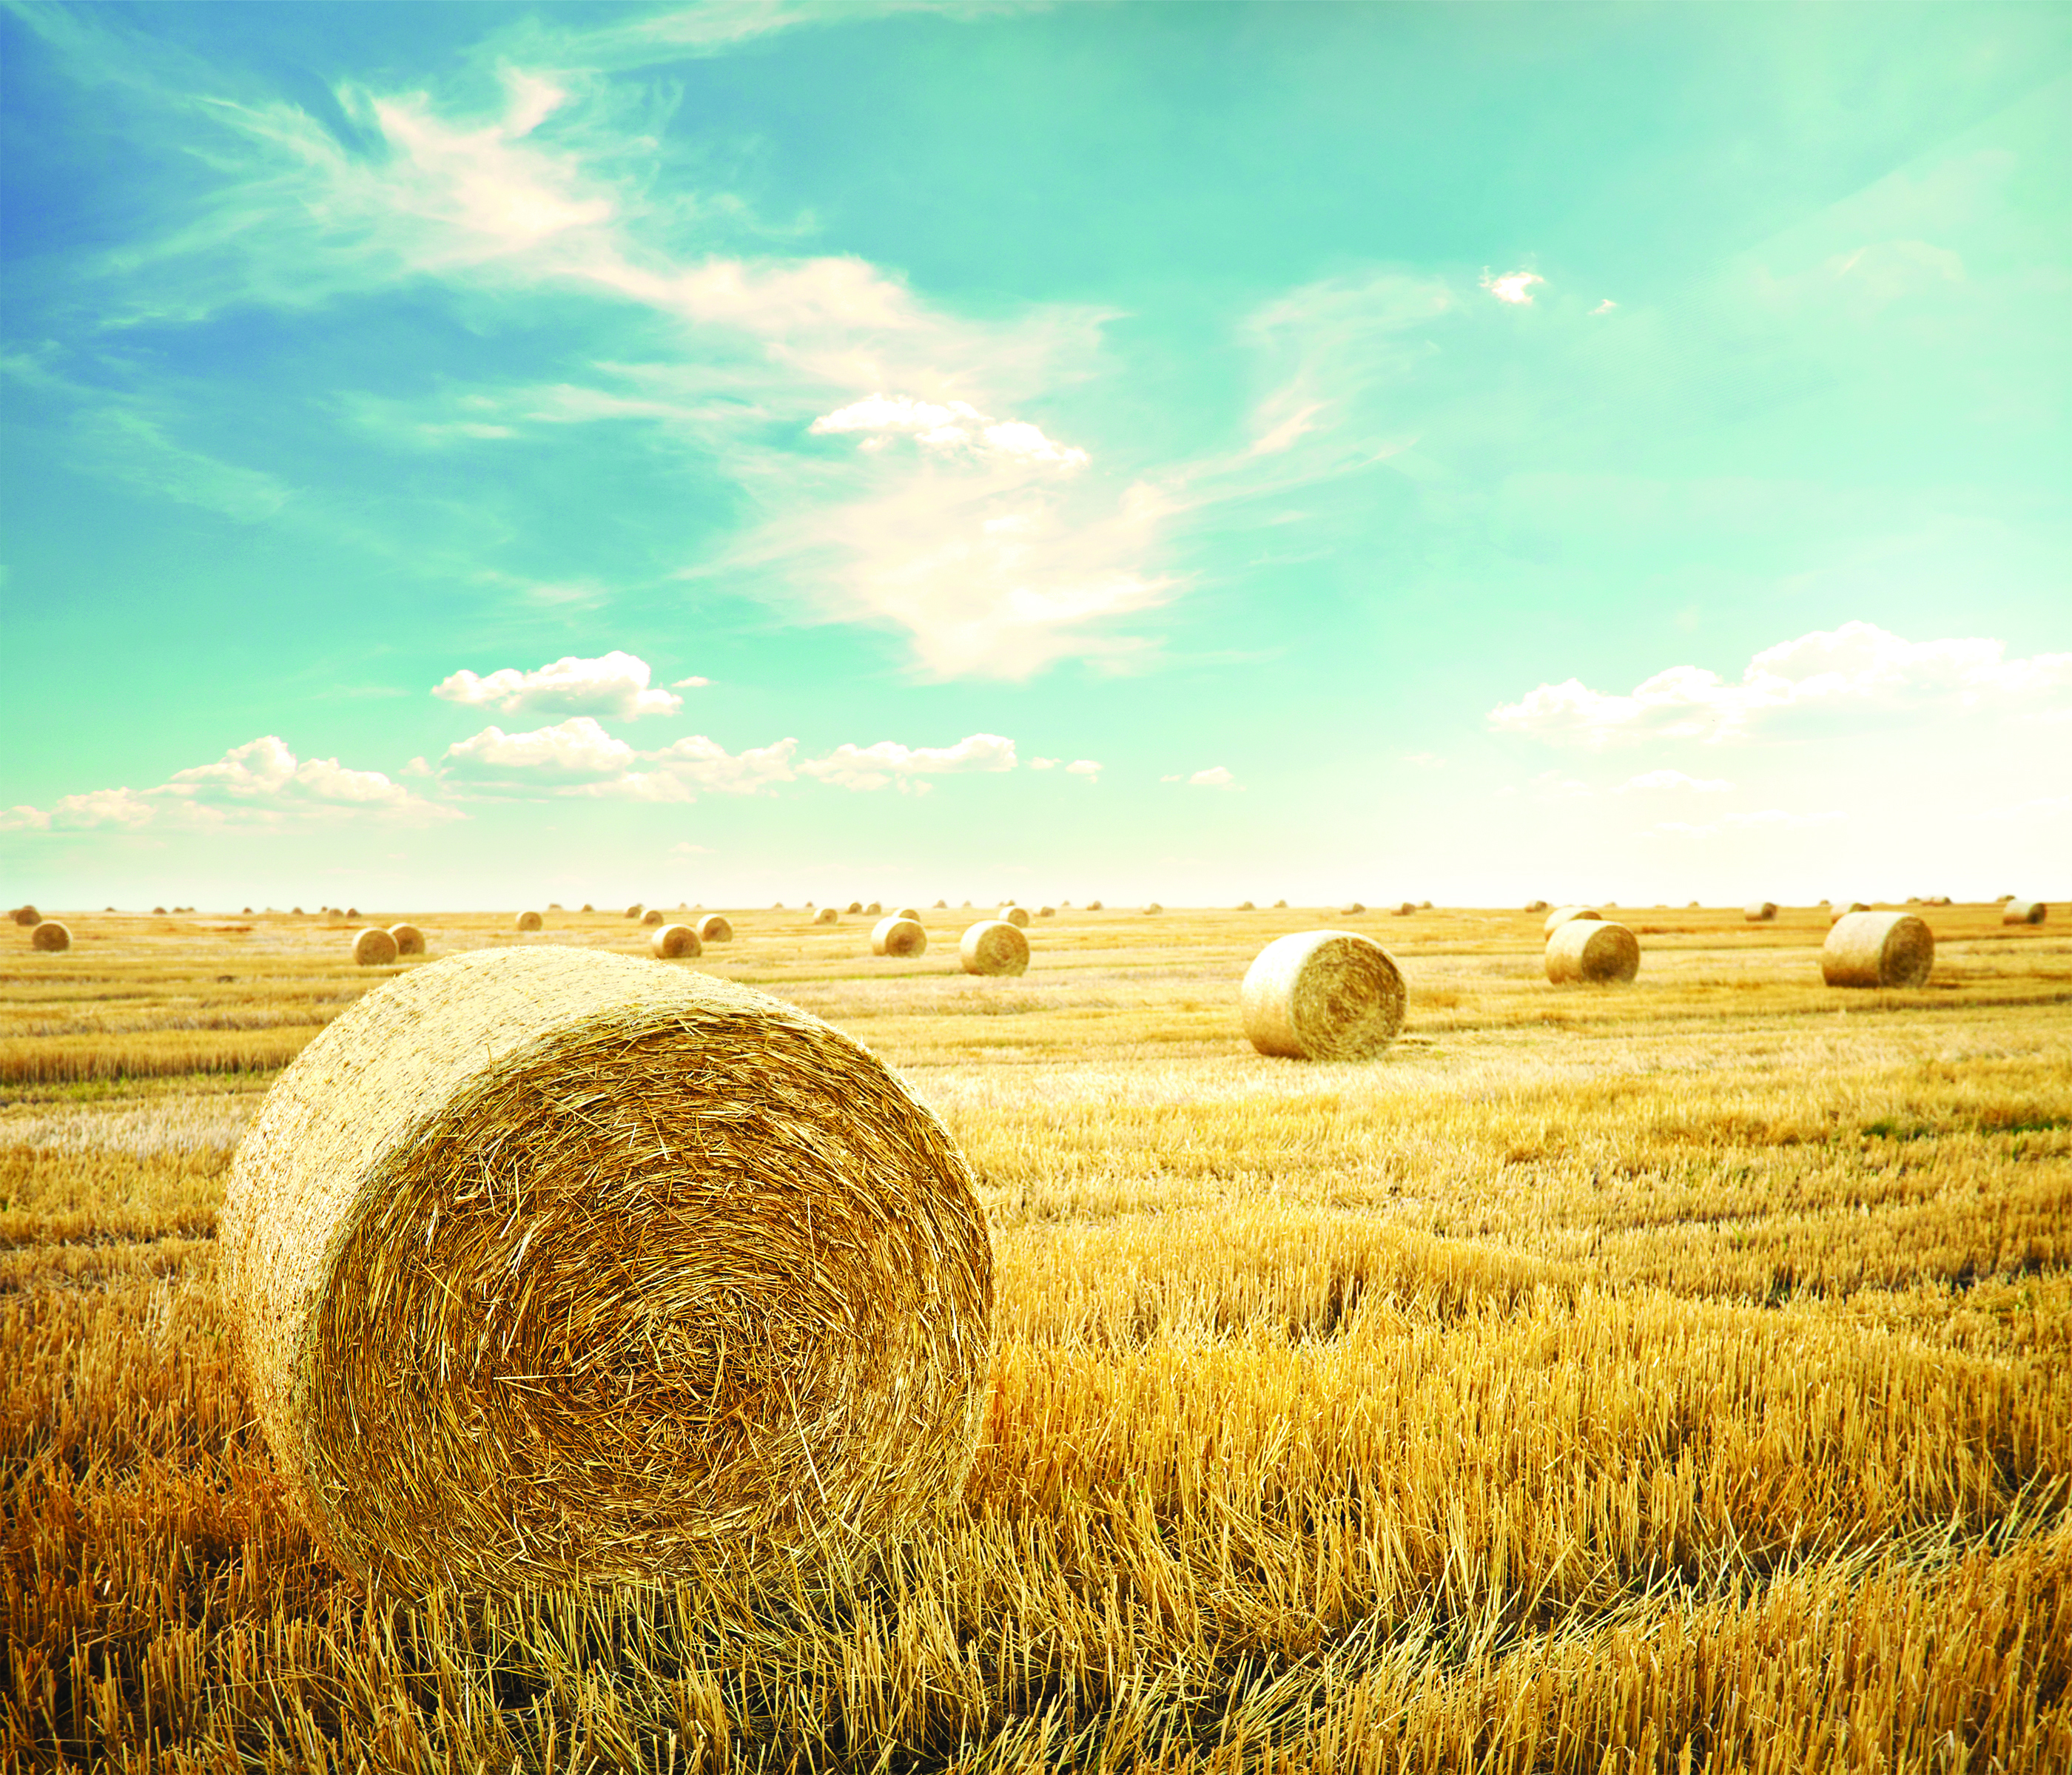 OPTISOCHEM is a BBI JU project converting wheat straw into bio-based chemicals.